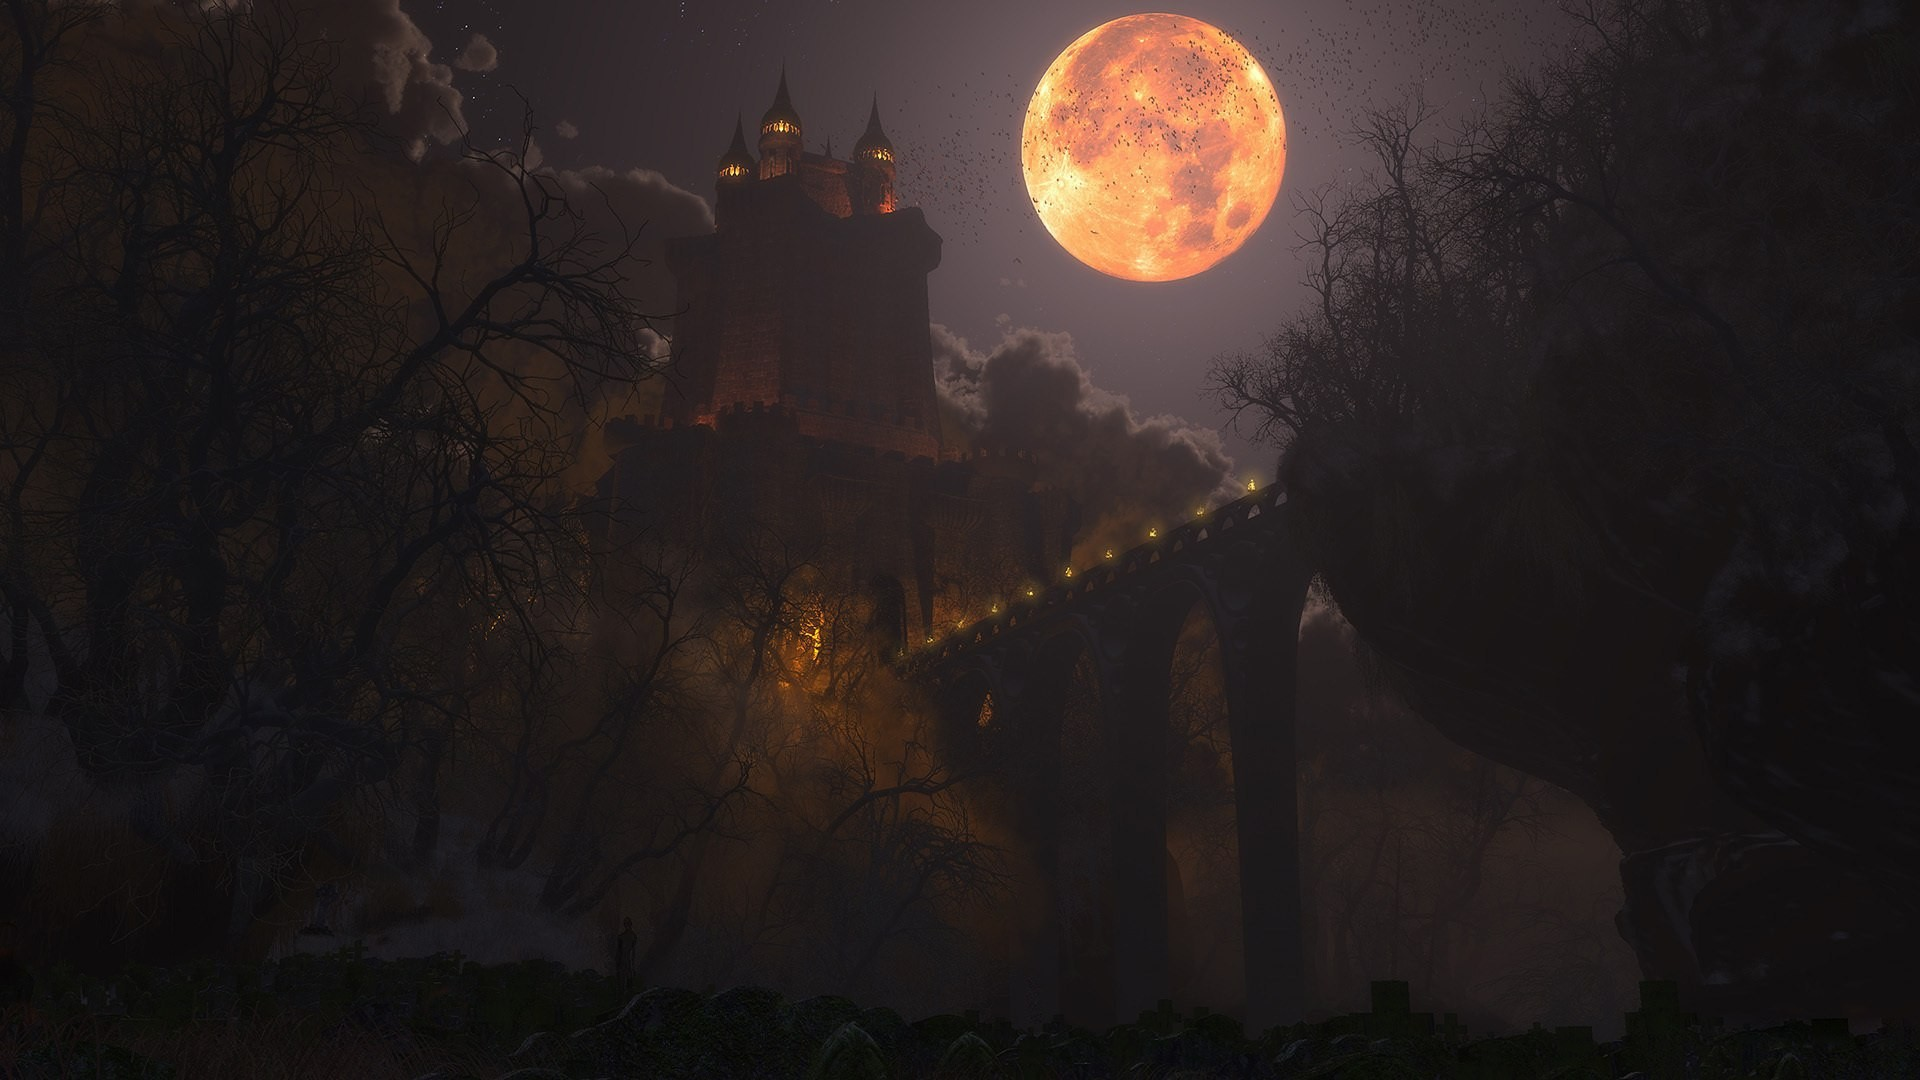 Res: 1920x1080, Moon over the castle of Dracula